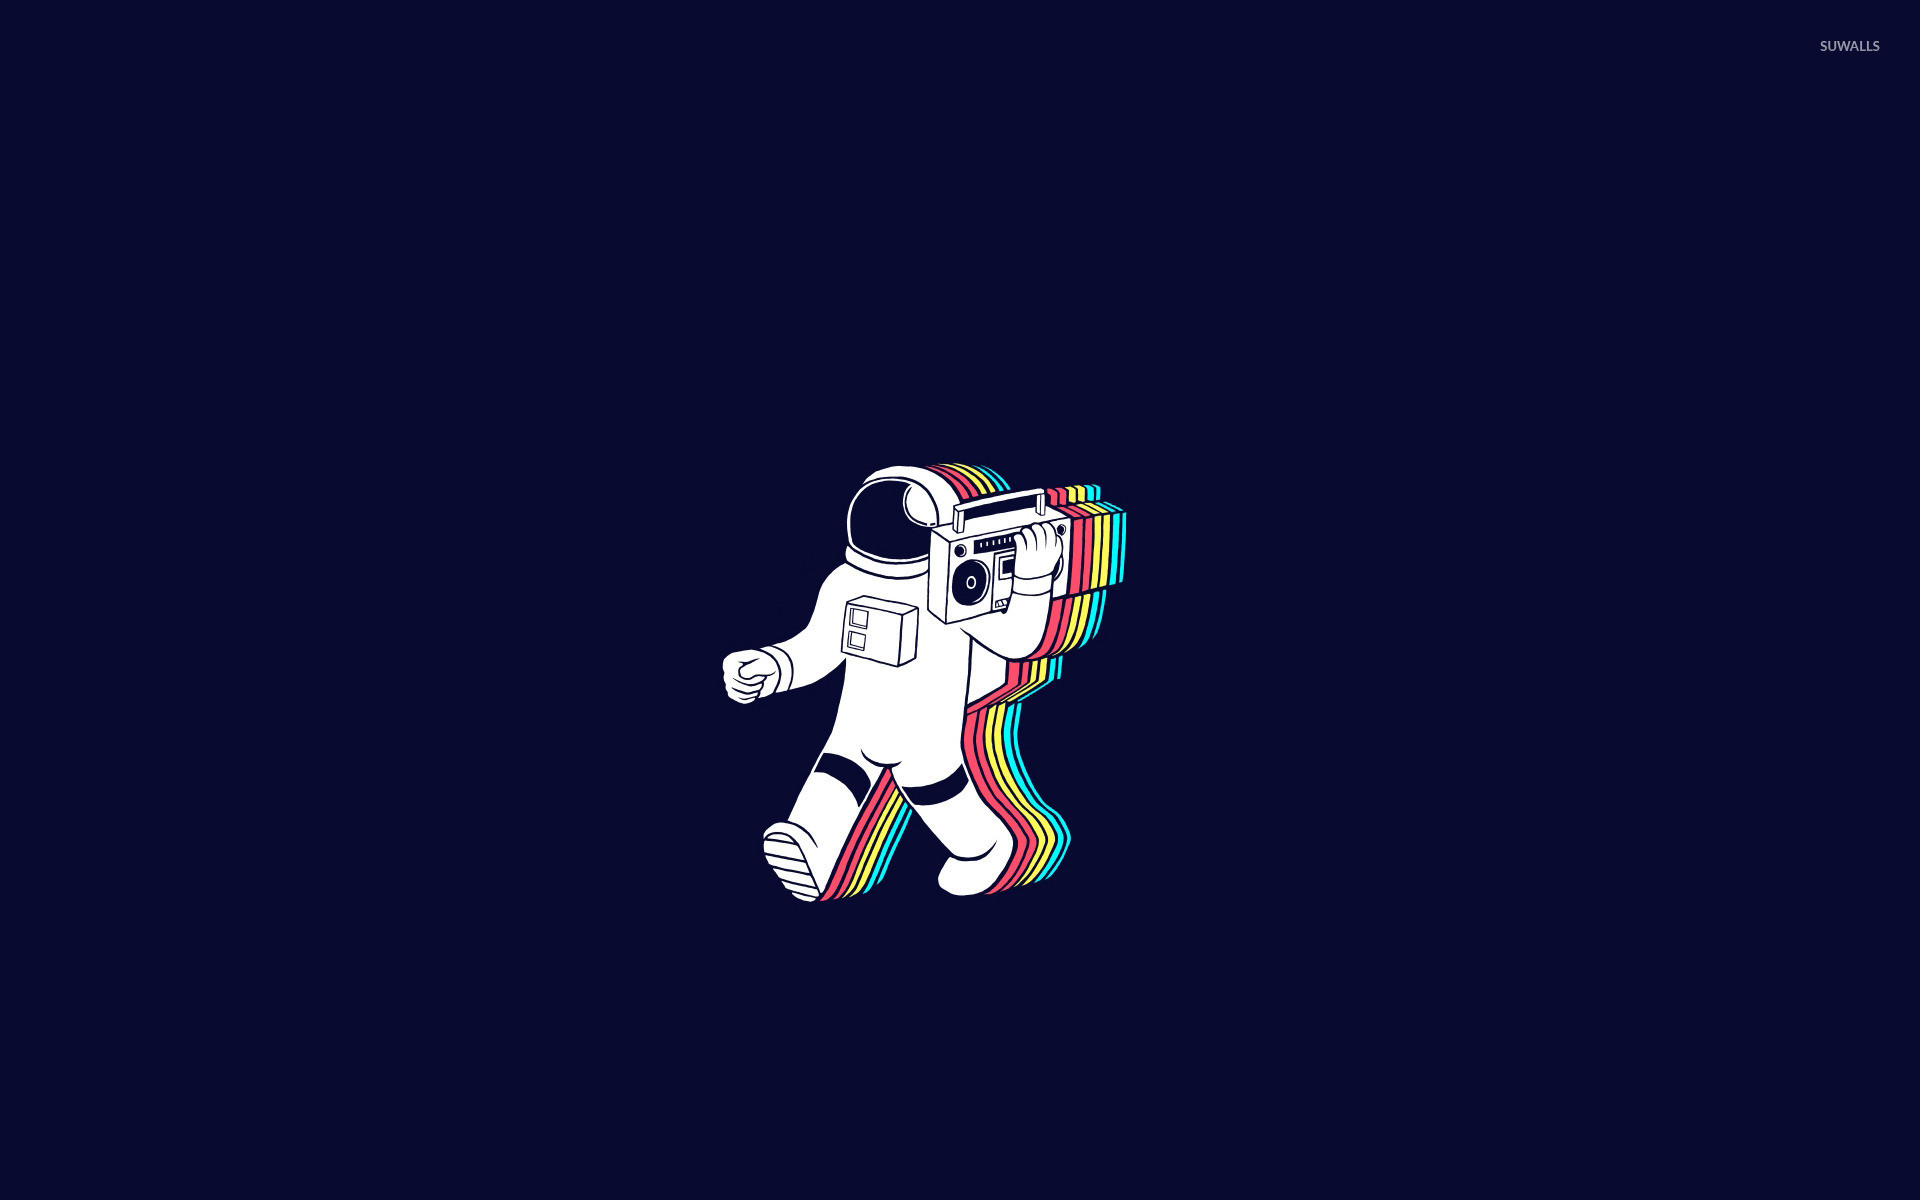 1920x1200 Astronaut Wallpaper Hd Resolution ...